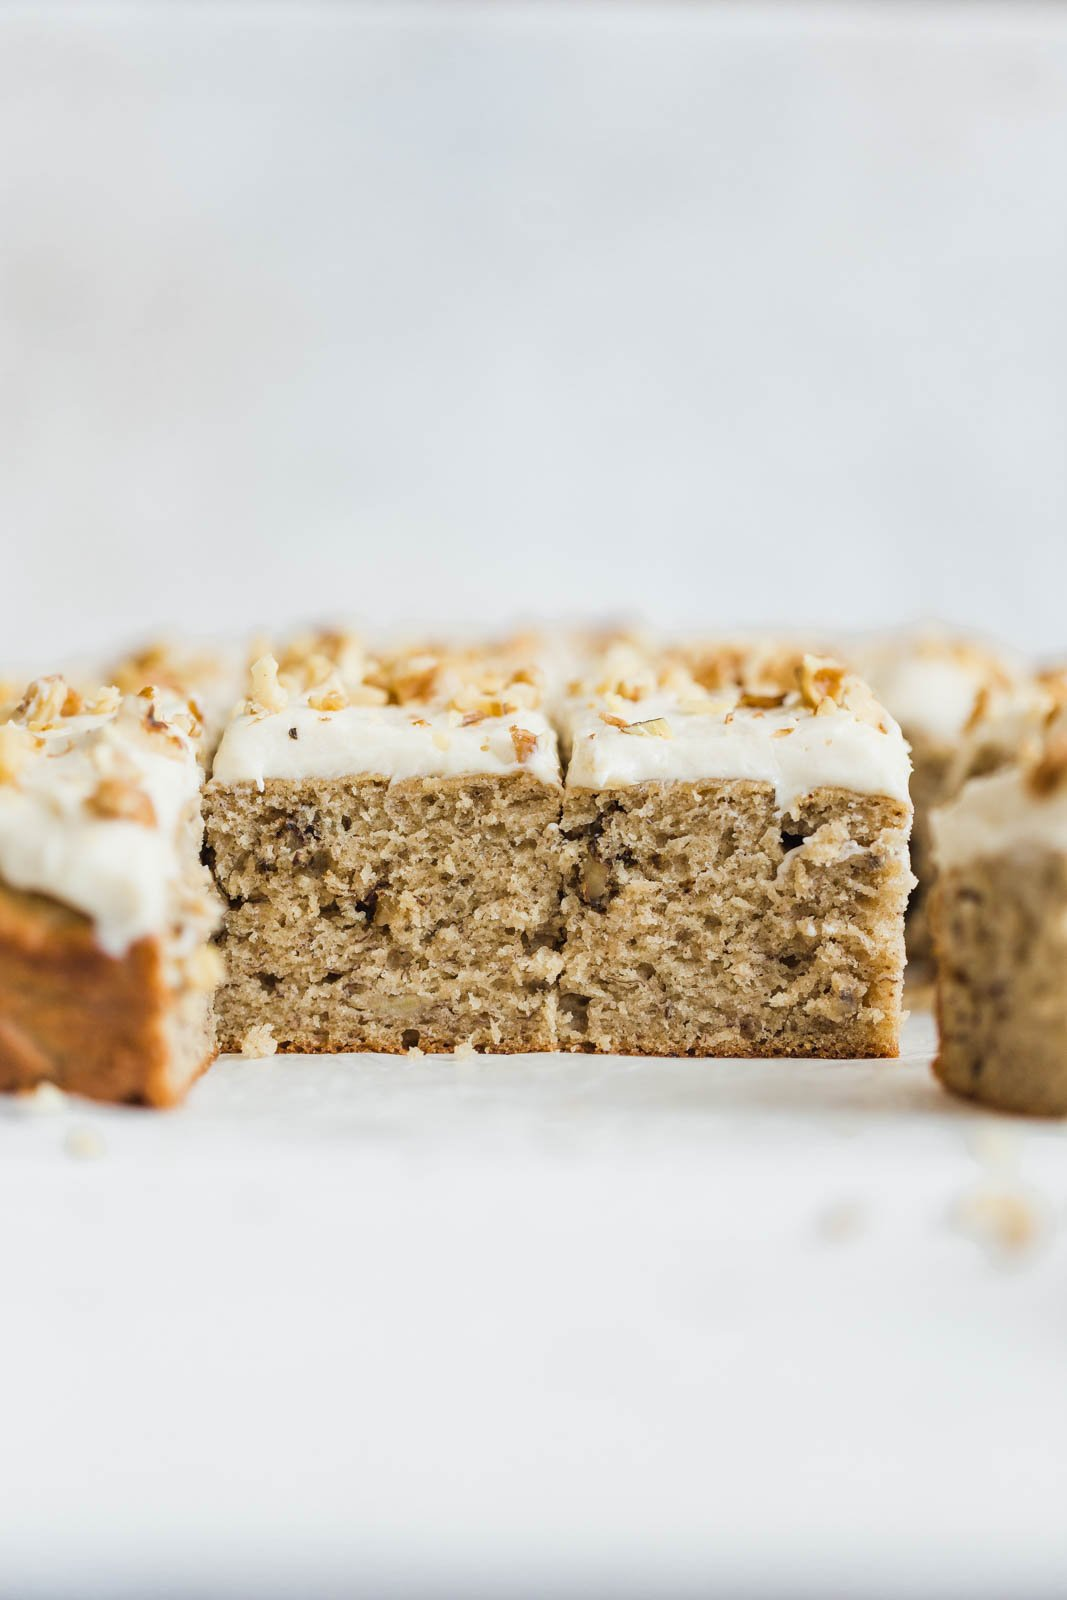 Banana Walnut Cake is a ridiculously easy one layer ultra moist banana cake loaded with flavor and topped with a rich cream cheese frosting.